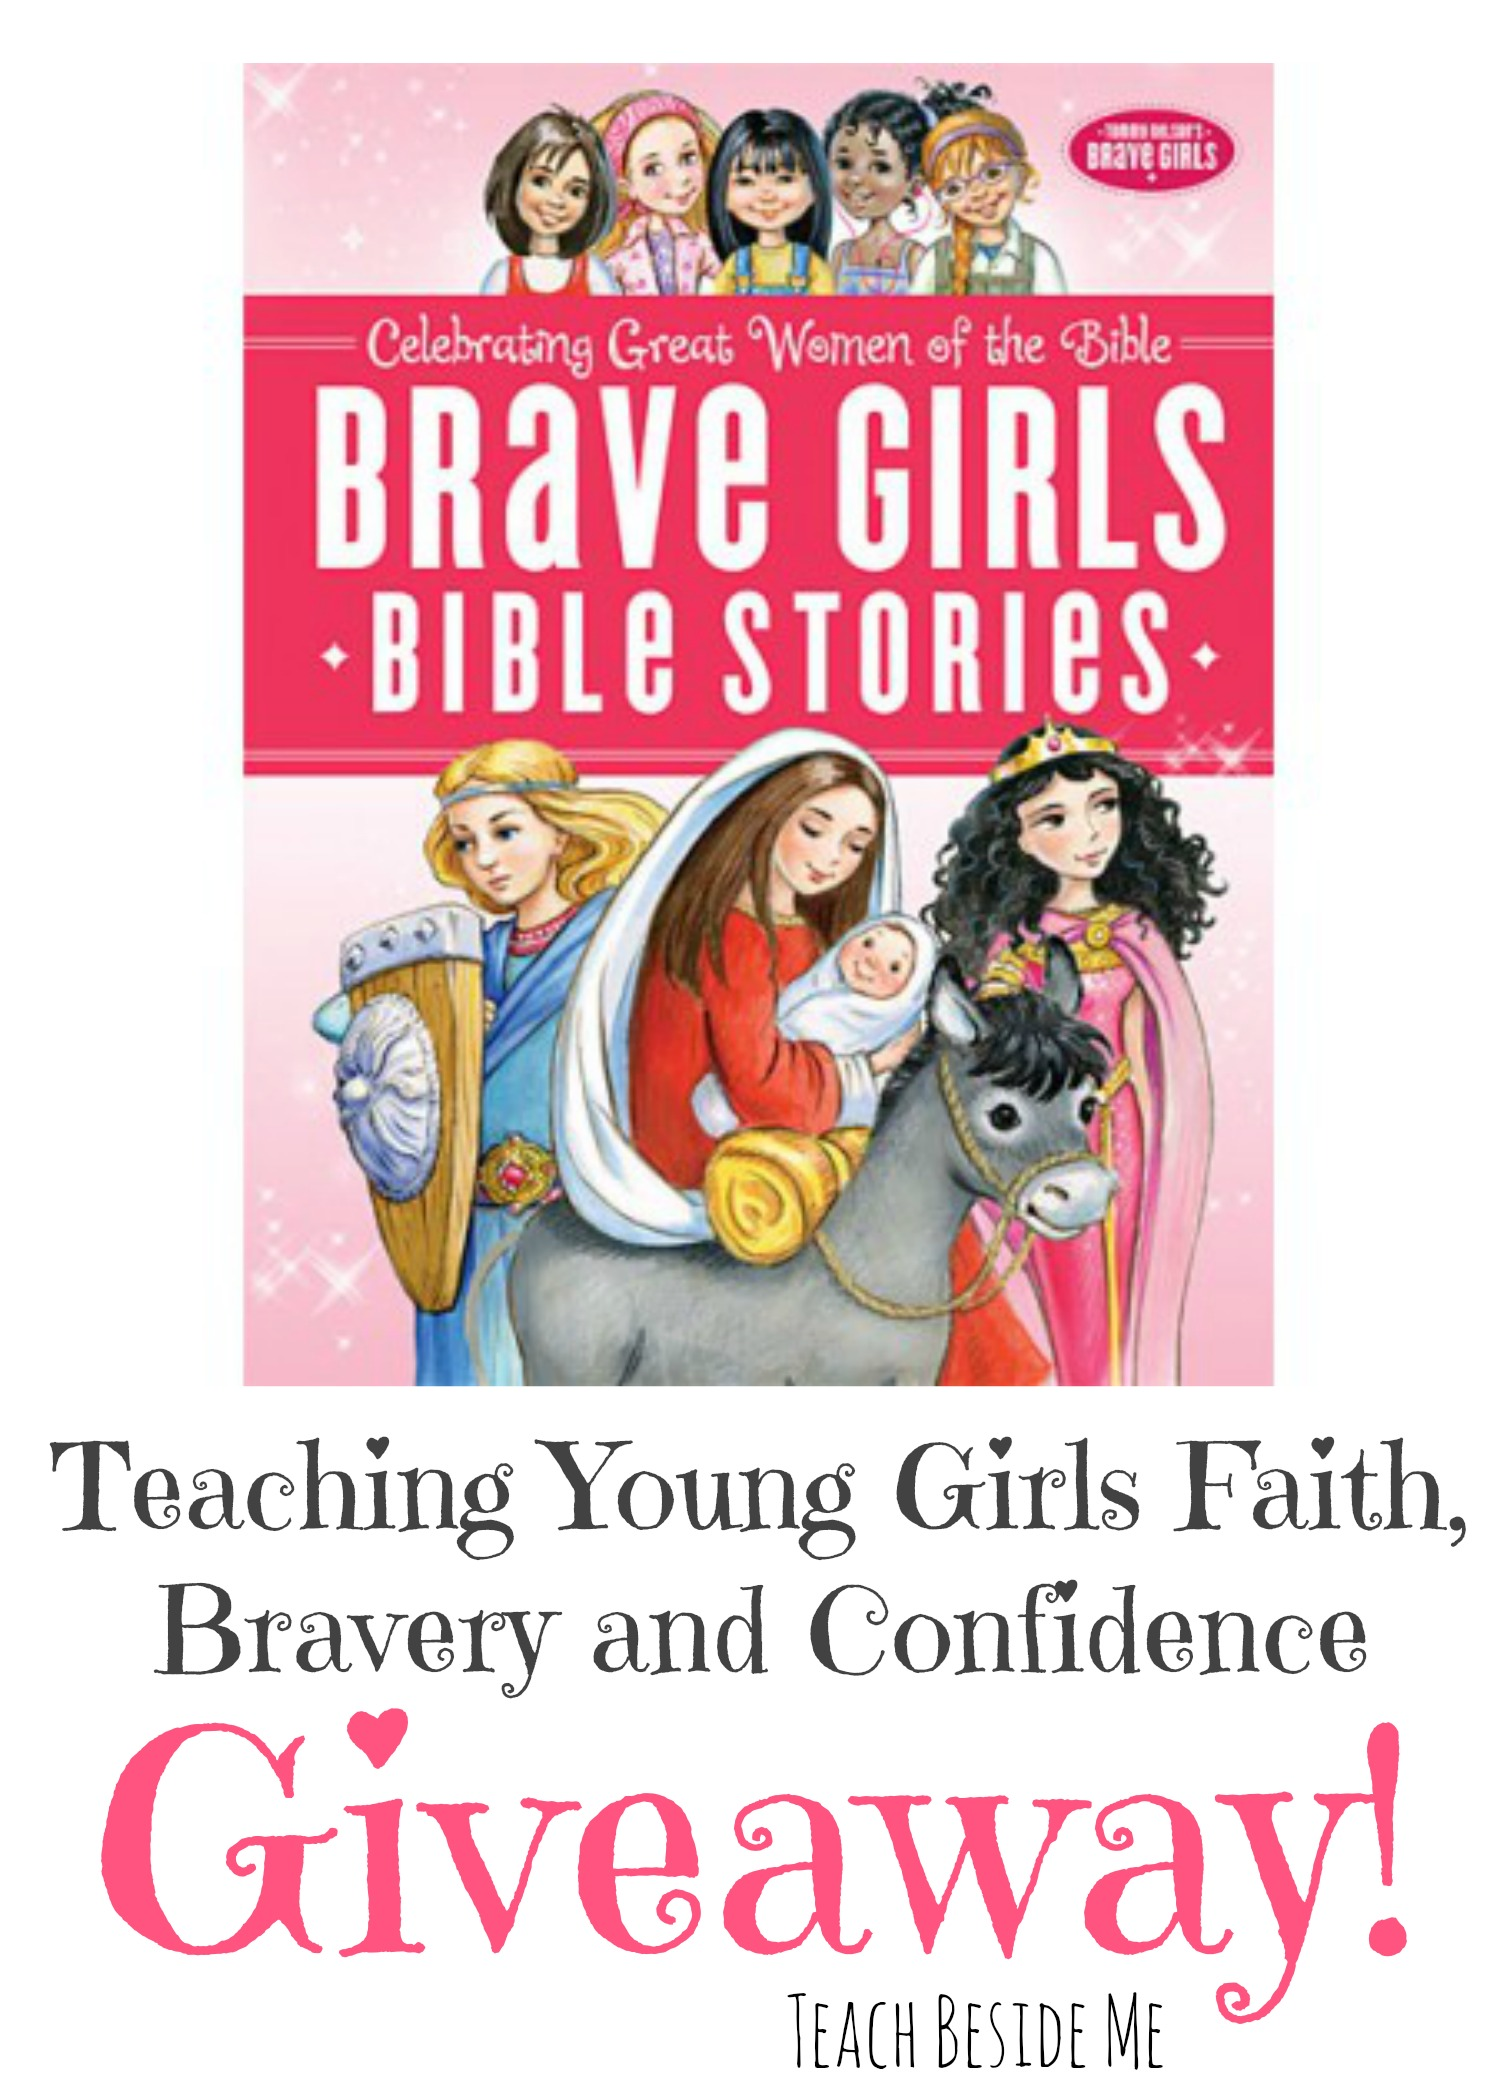 Brave Girls Bible Stories ~ Book Review & Giveaway